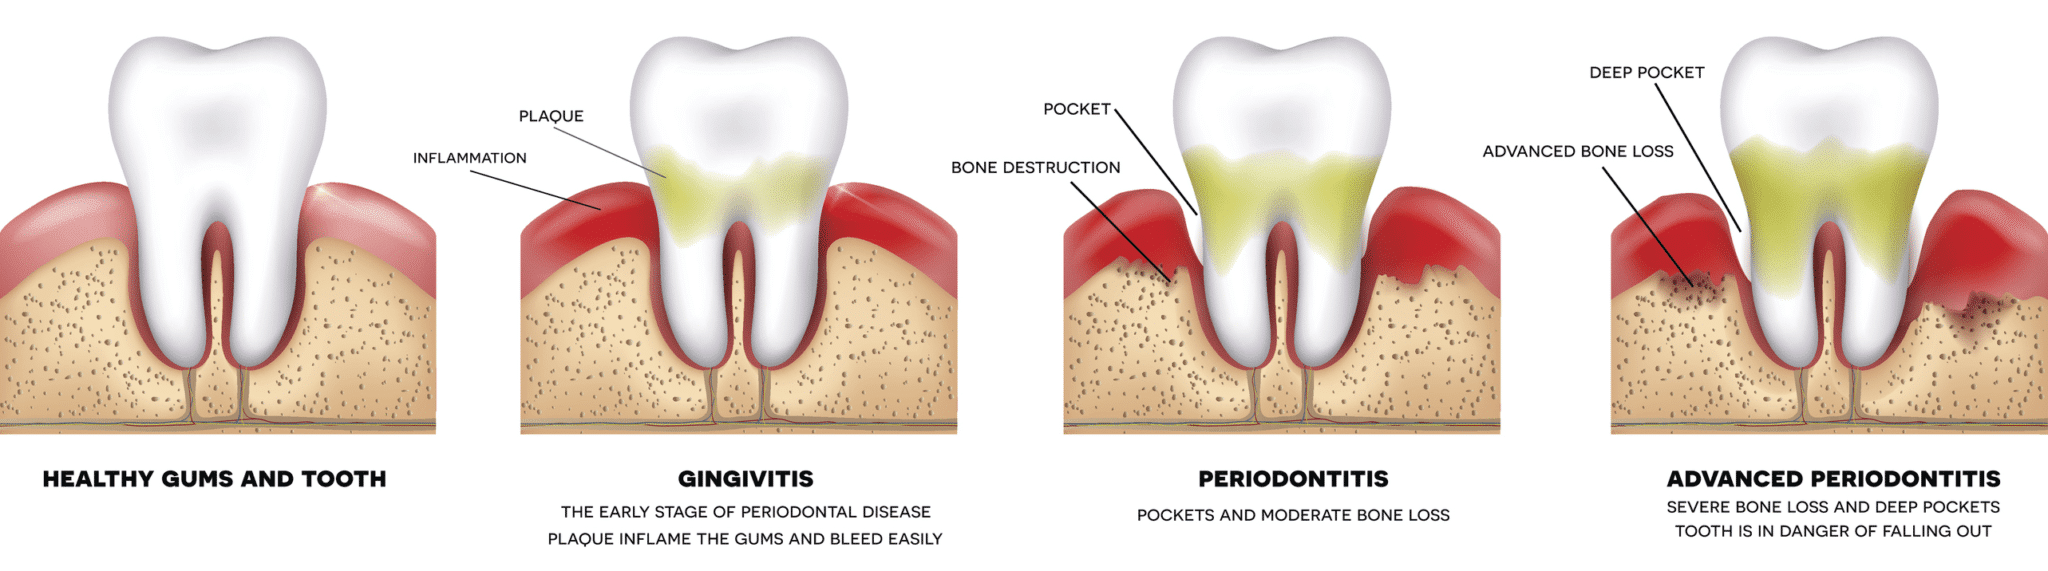 stages of periodontal disease woodbridge va